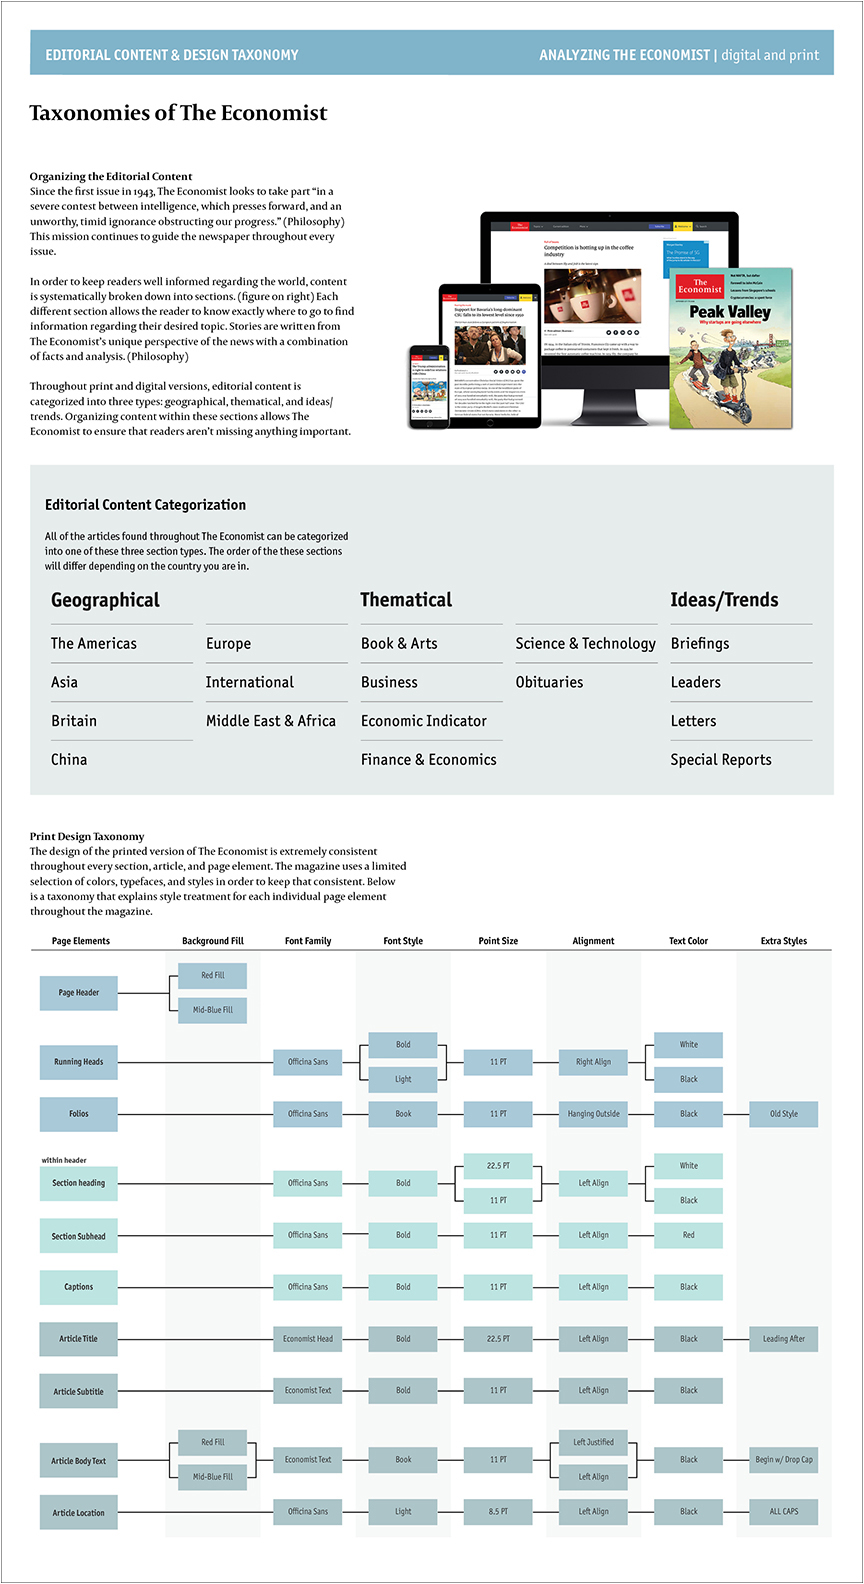 Broadsheet 2 - Editorial Content and Design Taxonomy